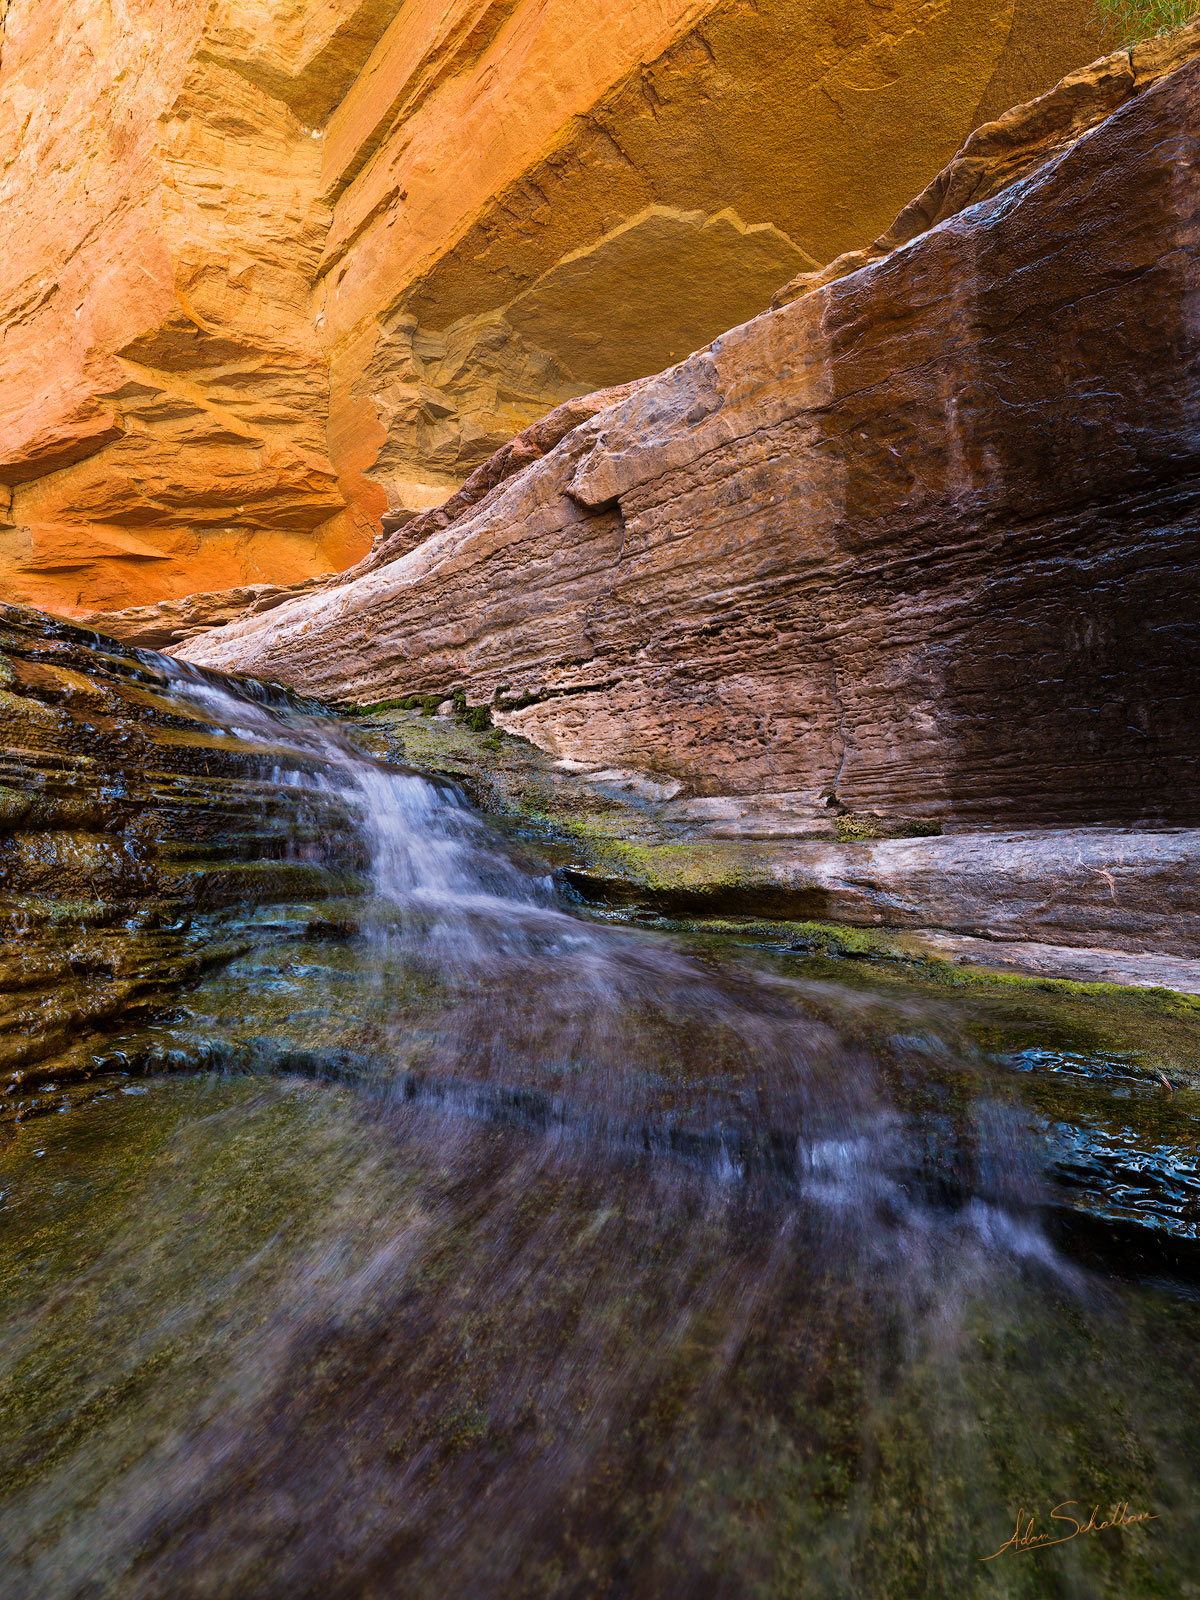 A waterfall in Matkatamiba Canyon, a side canyon to the Colorado River in Grand Canyon National Park.